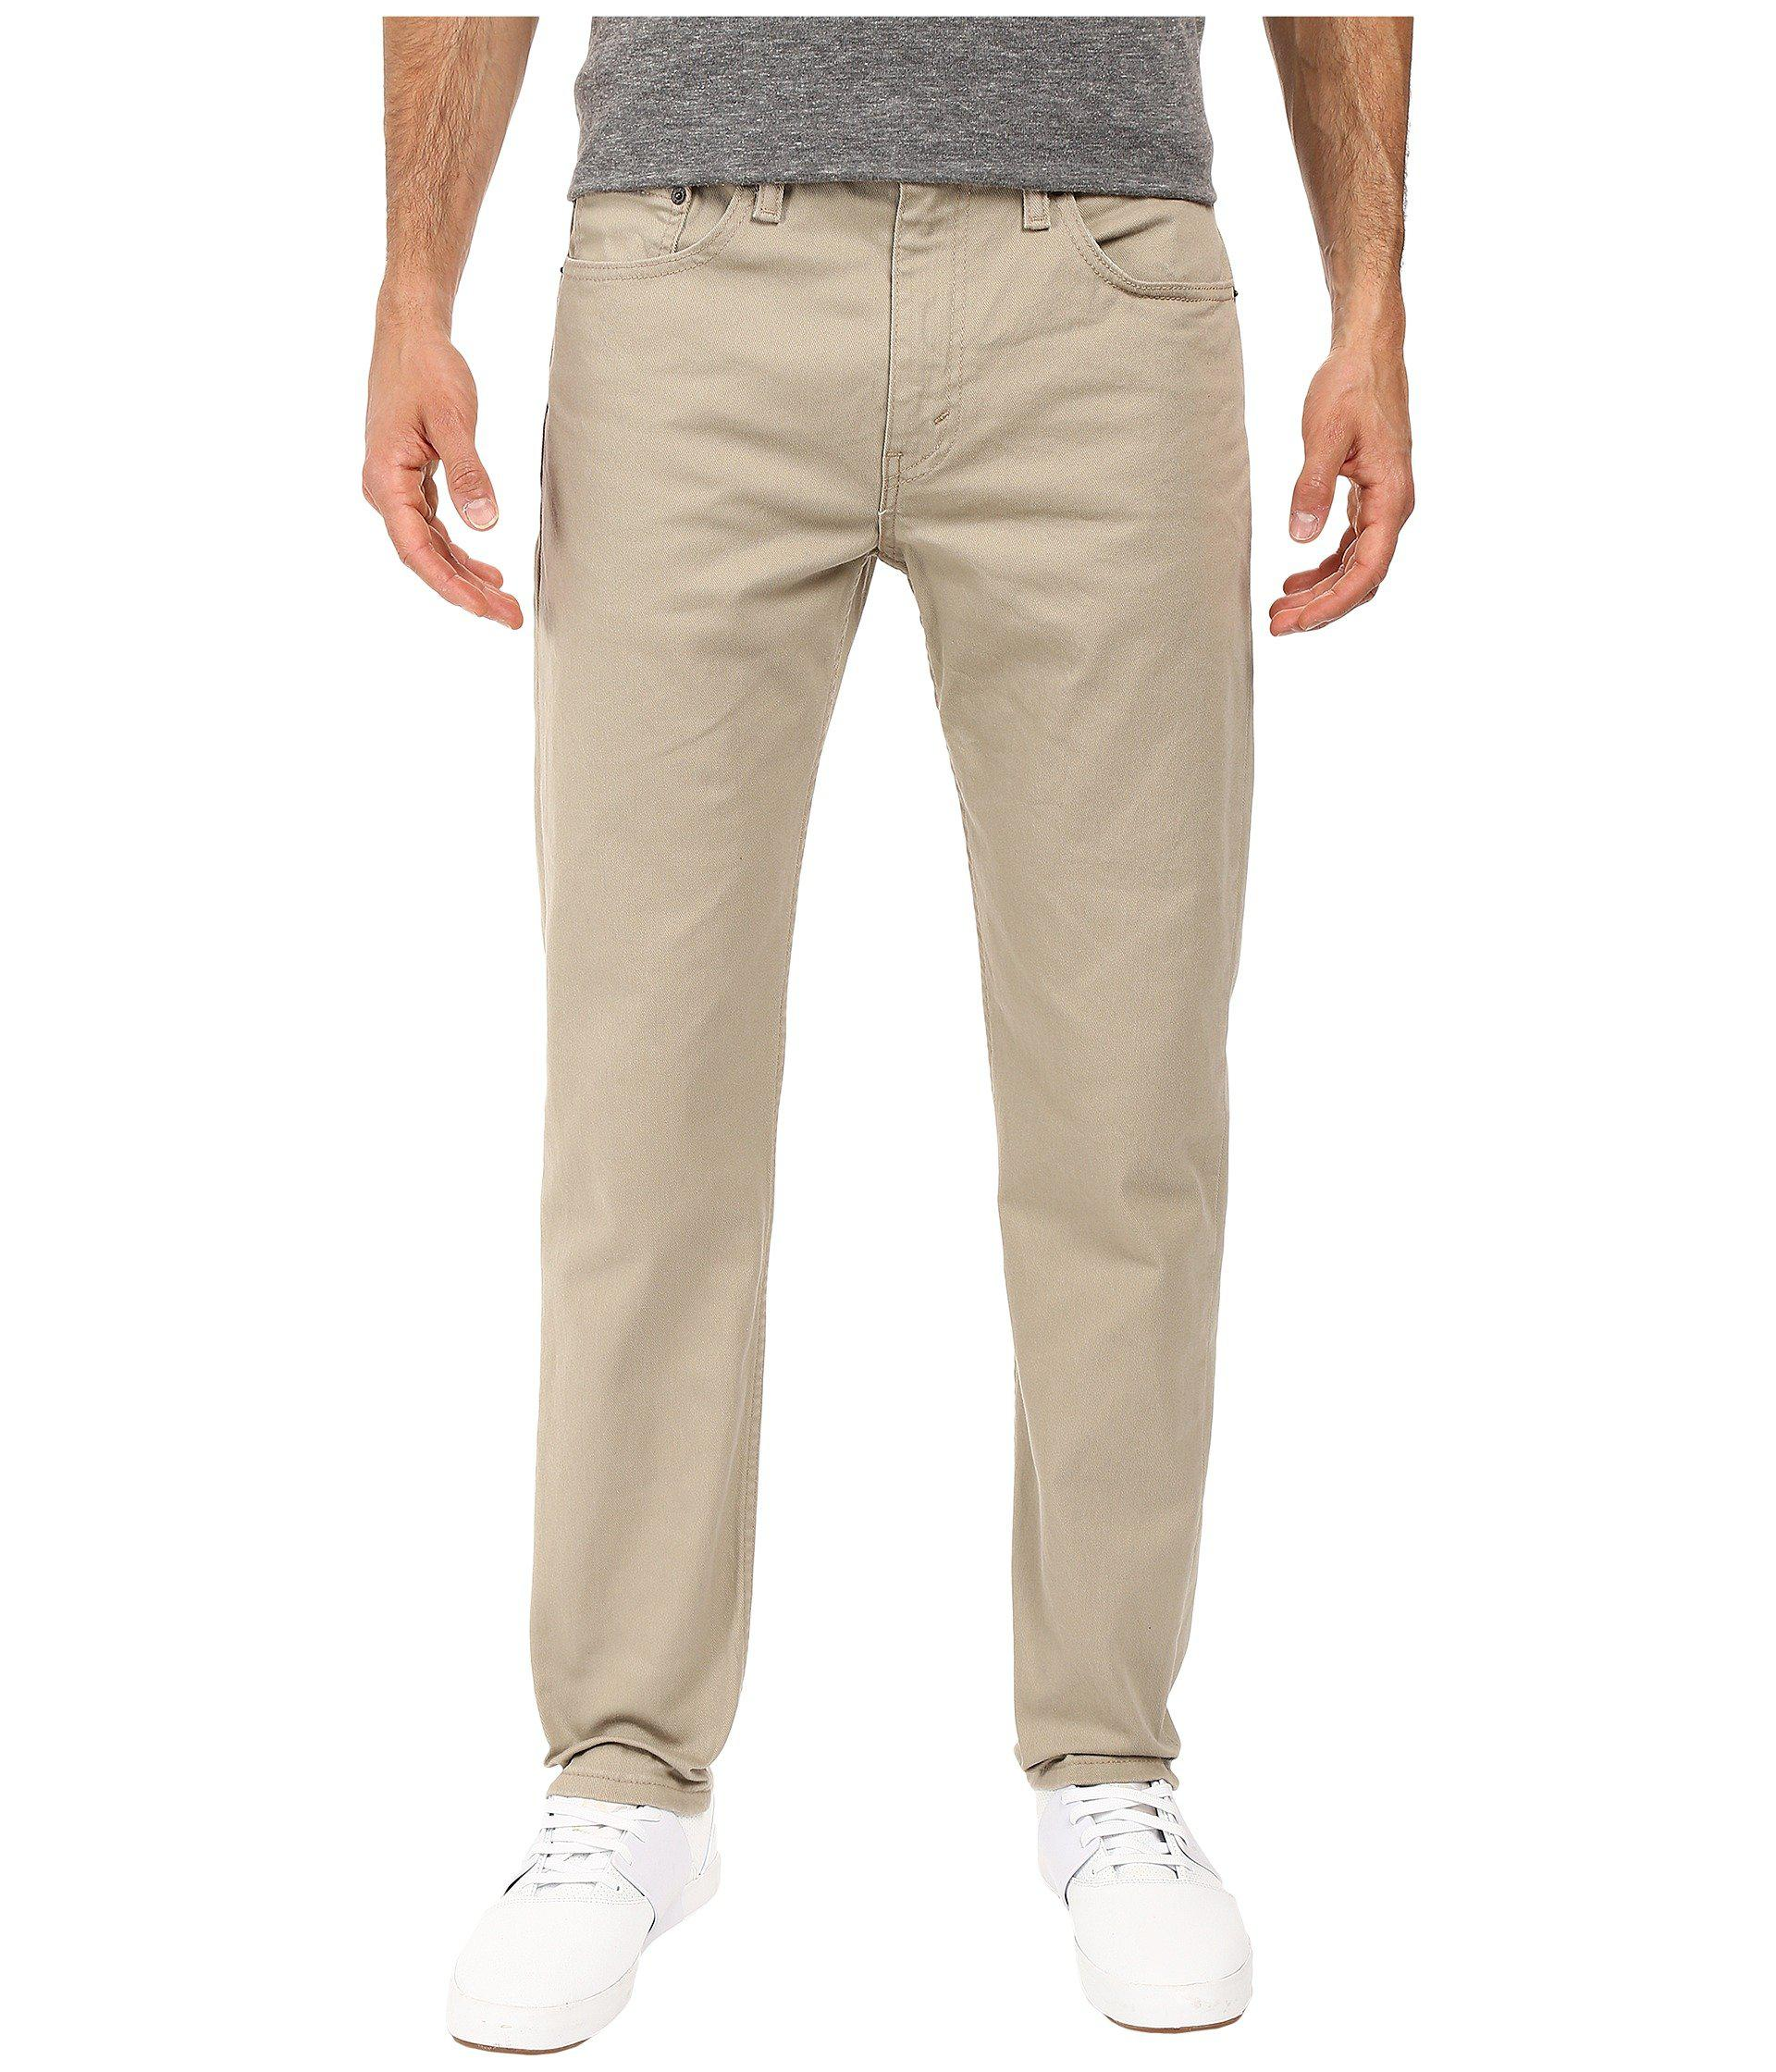 05377e67f1af26 Levi's. Levi's(r) Mens 502 Regular Taper Fit (grey Stucco Warp Stretch) Men's  Jeans